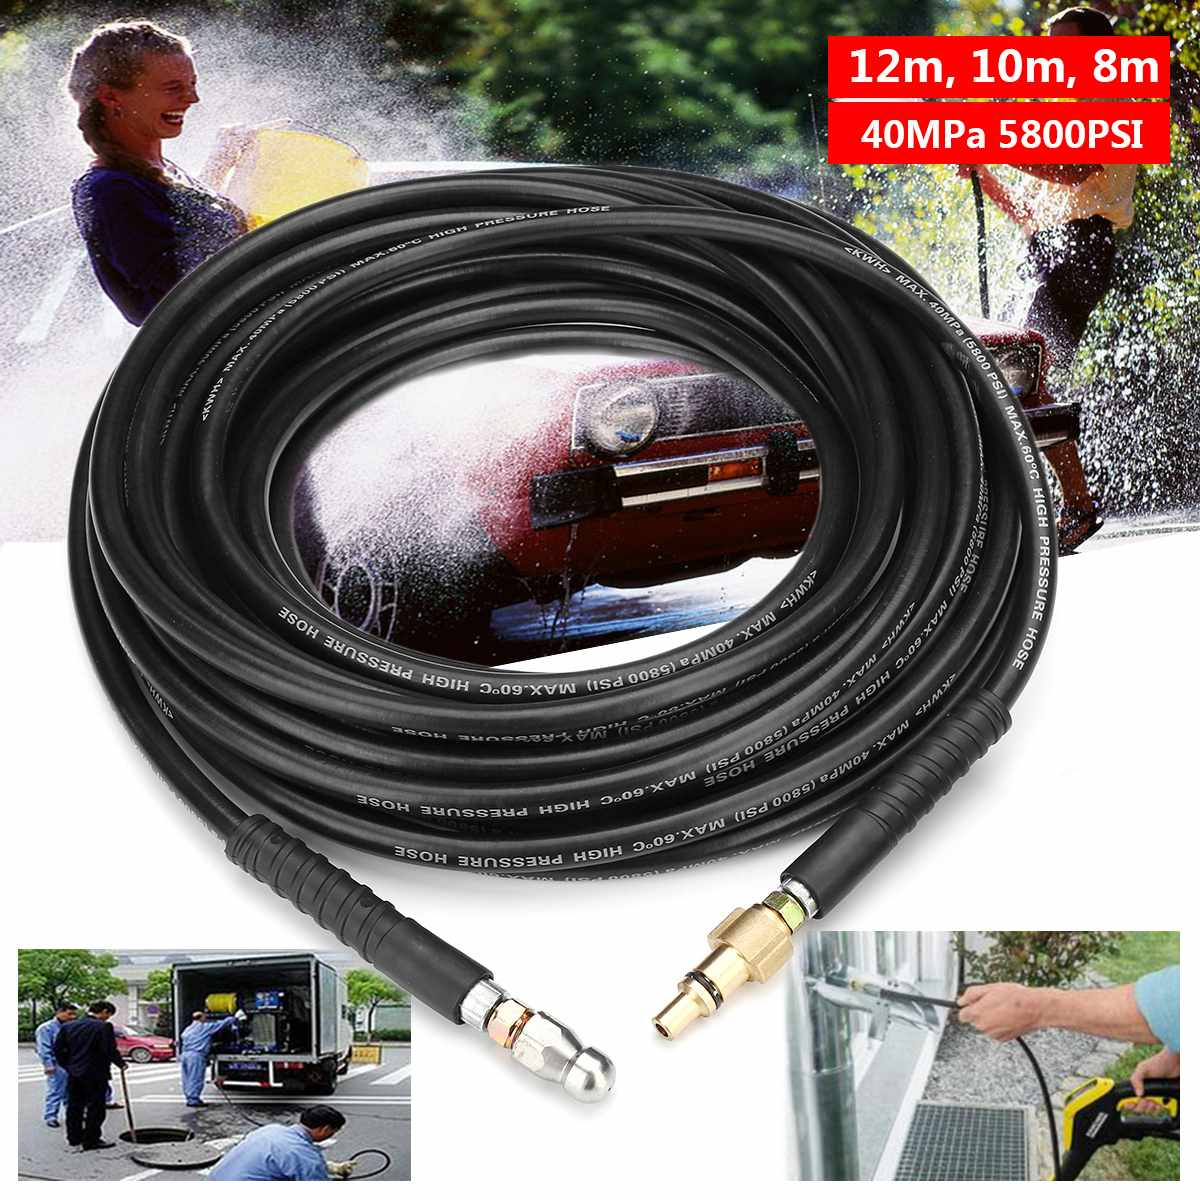 High Pressure 8/10/12m 40MPa 5800PSI Washer Drain Cleaning Hose Set Pipe Cleaner for Cleaning Ppipes Drains Downspouts ToiletsHigh Pressure 8/10/12m 40MPa 5800PSI Washer Drain Cleaning Hose Set Pipe Cleaner for Cleaning Ppipes Drains Downspouts Toilets